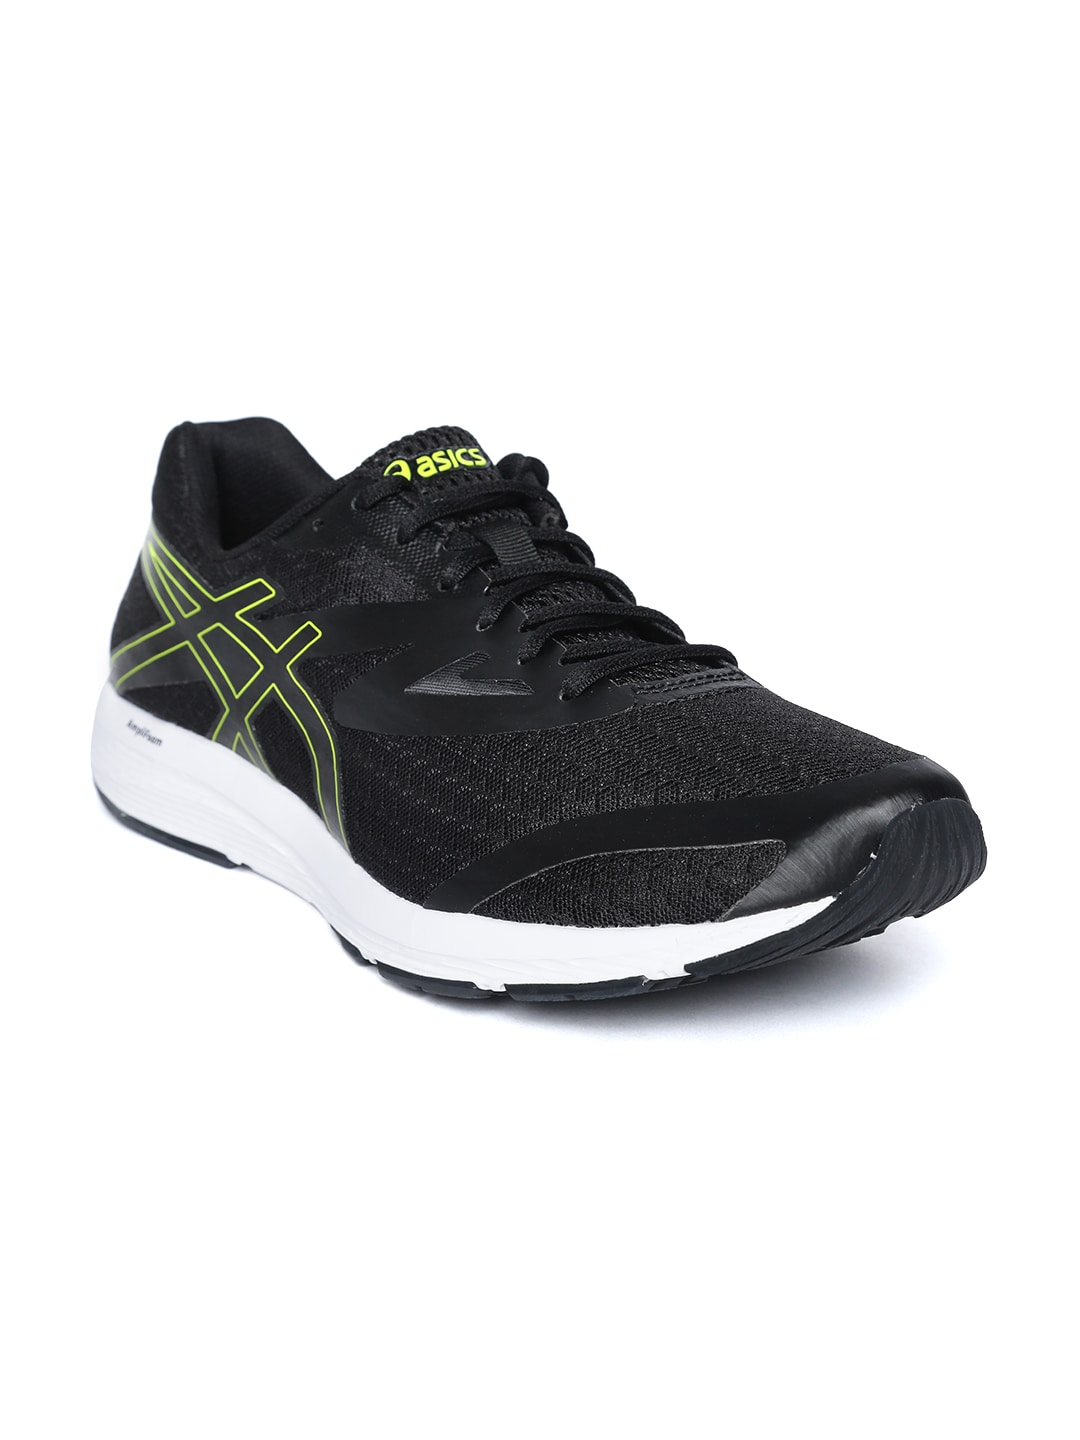 official photos 8a810 d2f3e Asics Shoes - Buy Asics Shoes for Men and Women Online - Myntra